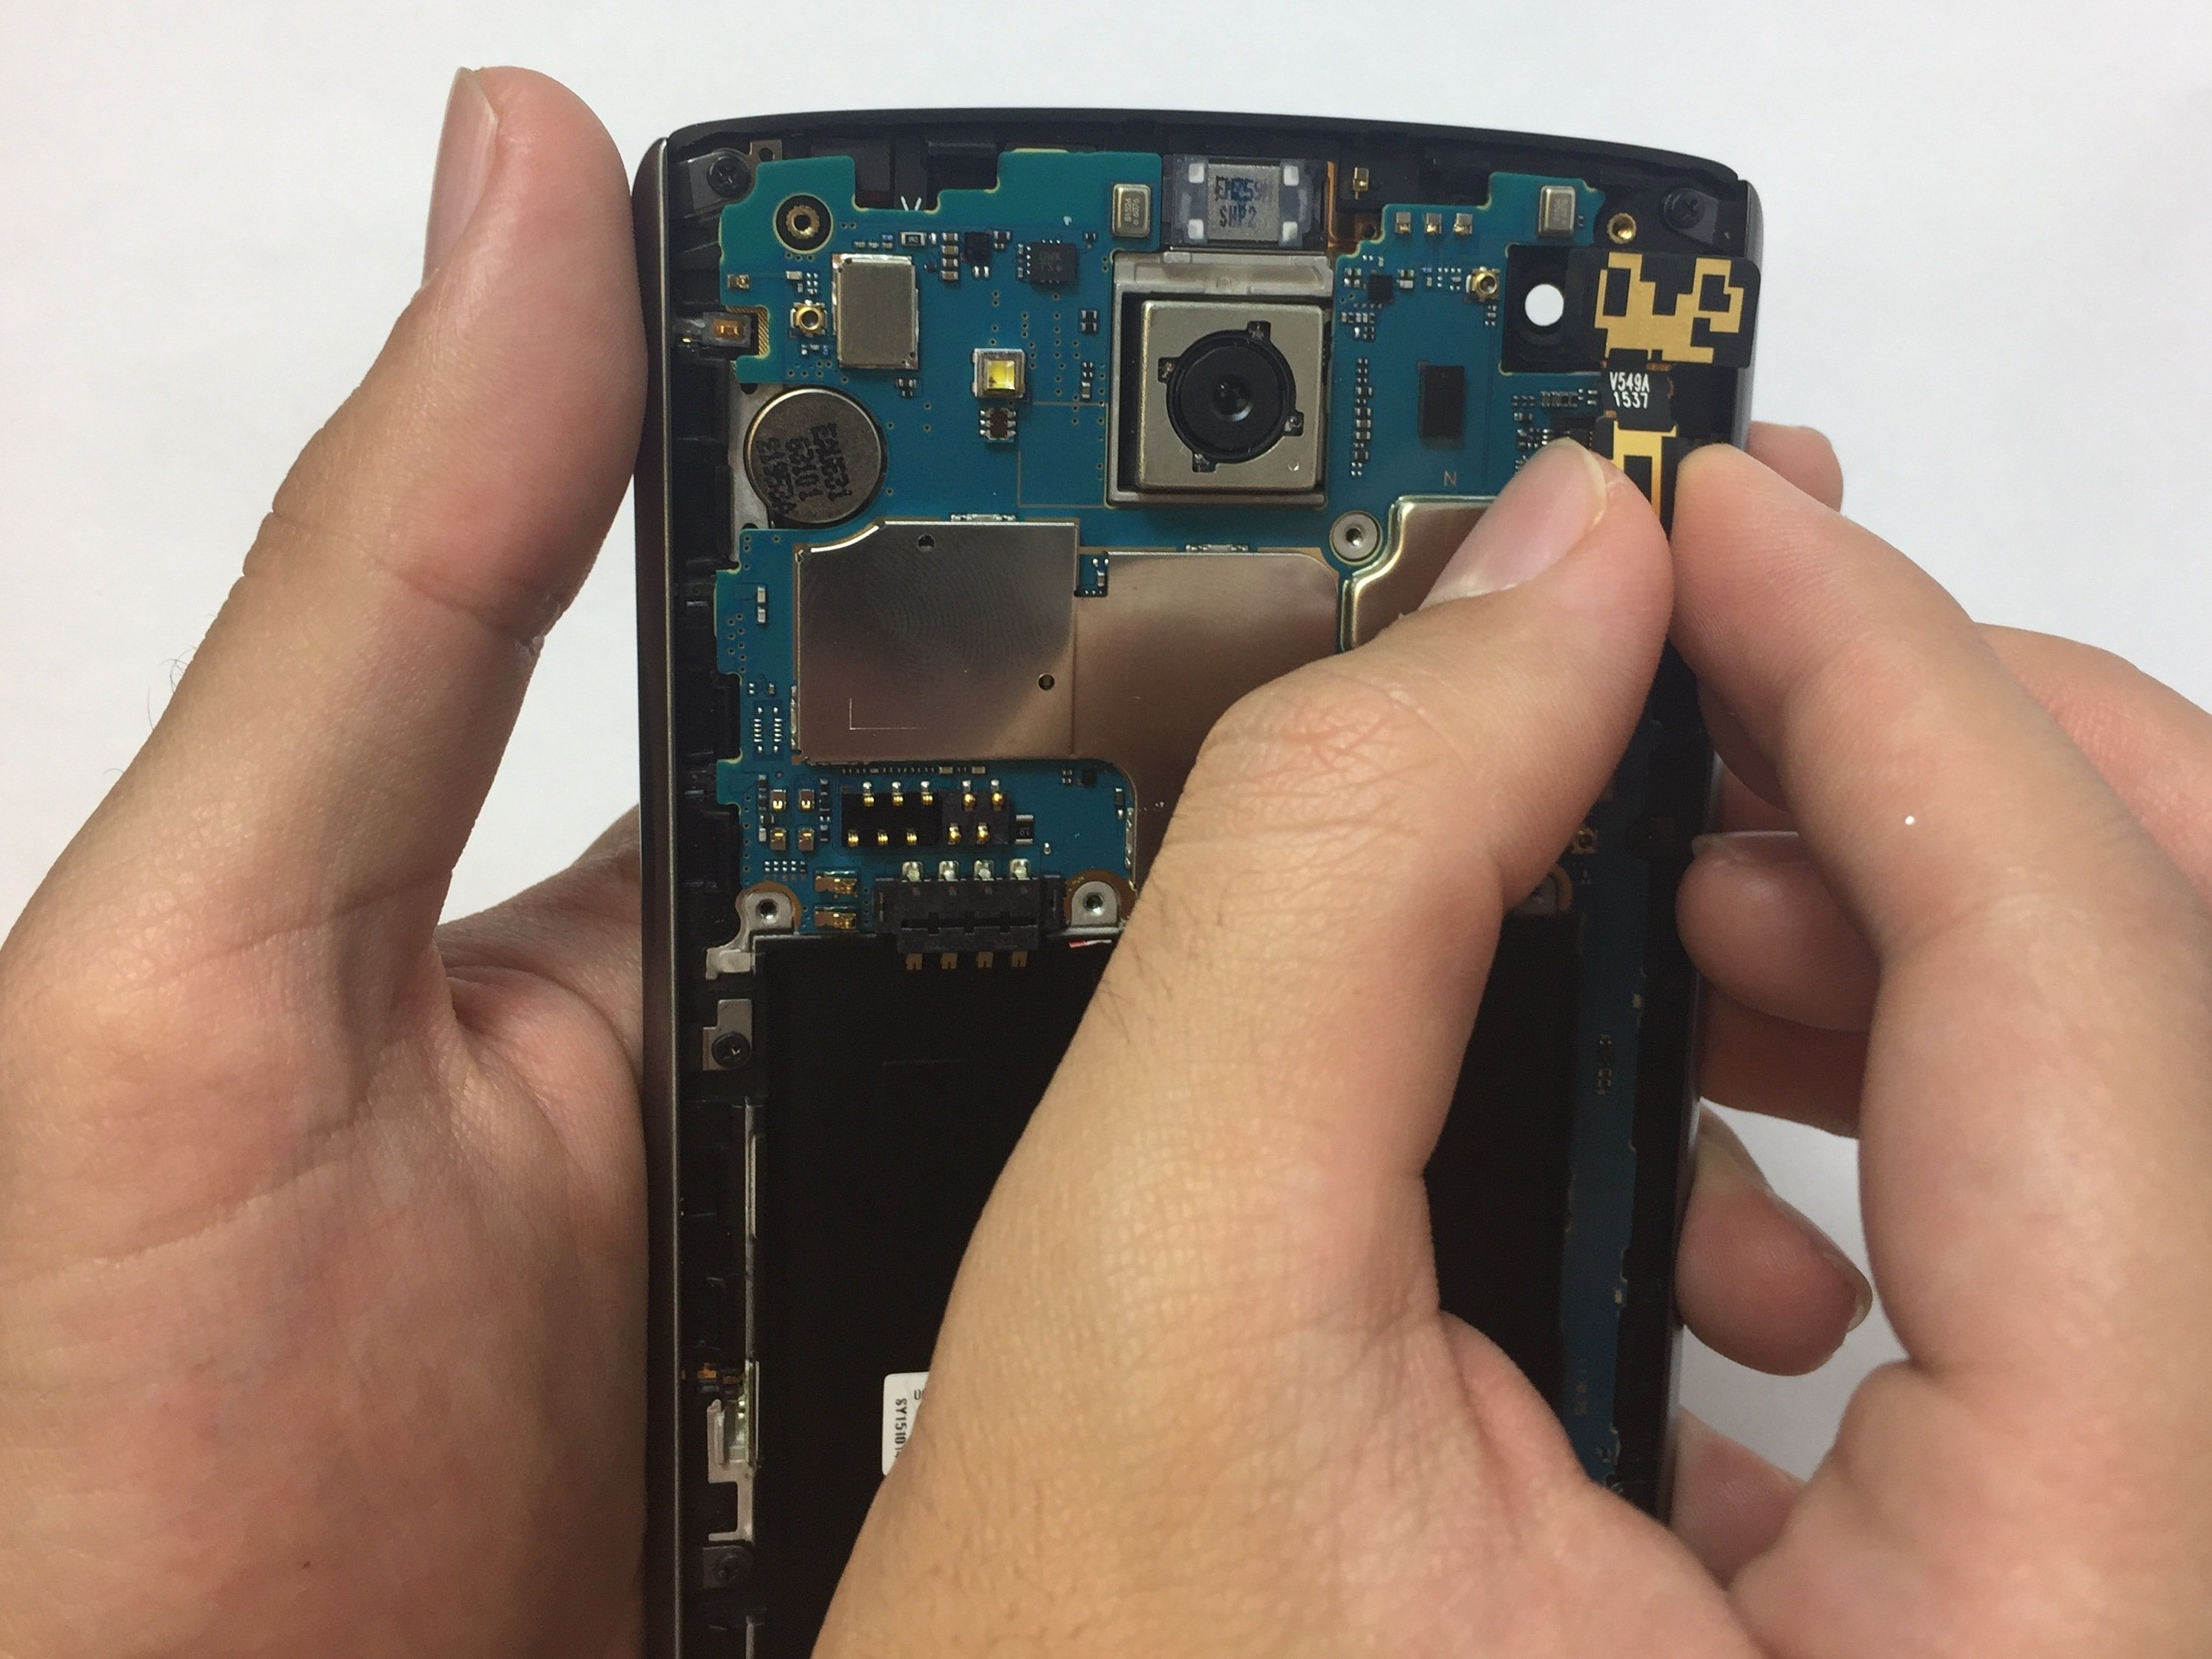 LG V10 Dual Front Cameras Replacement - iFixit Repair Guide